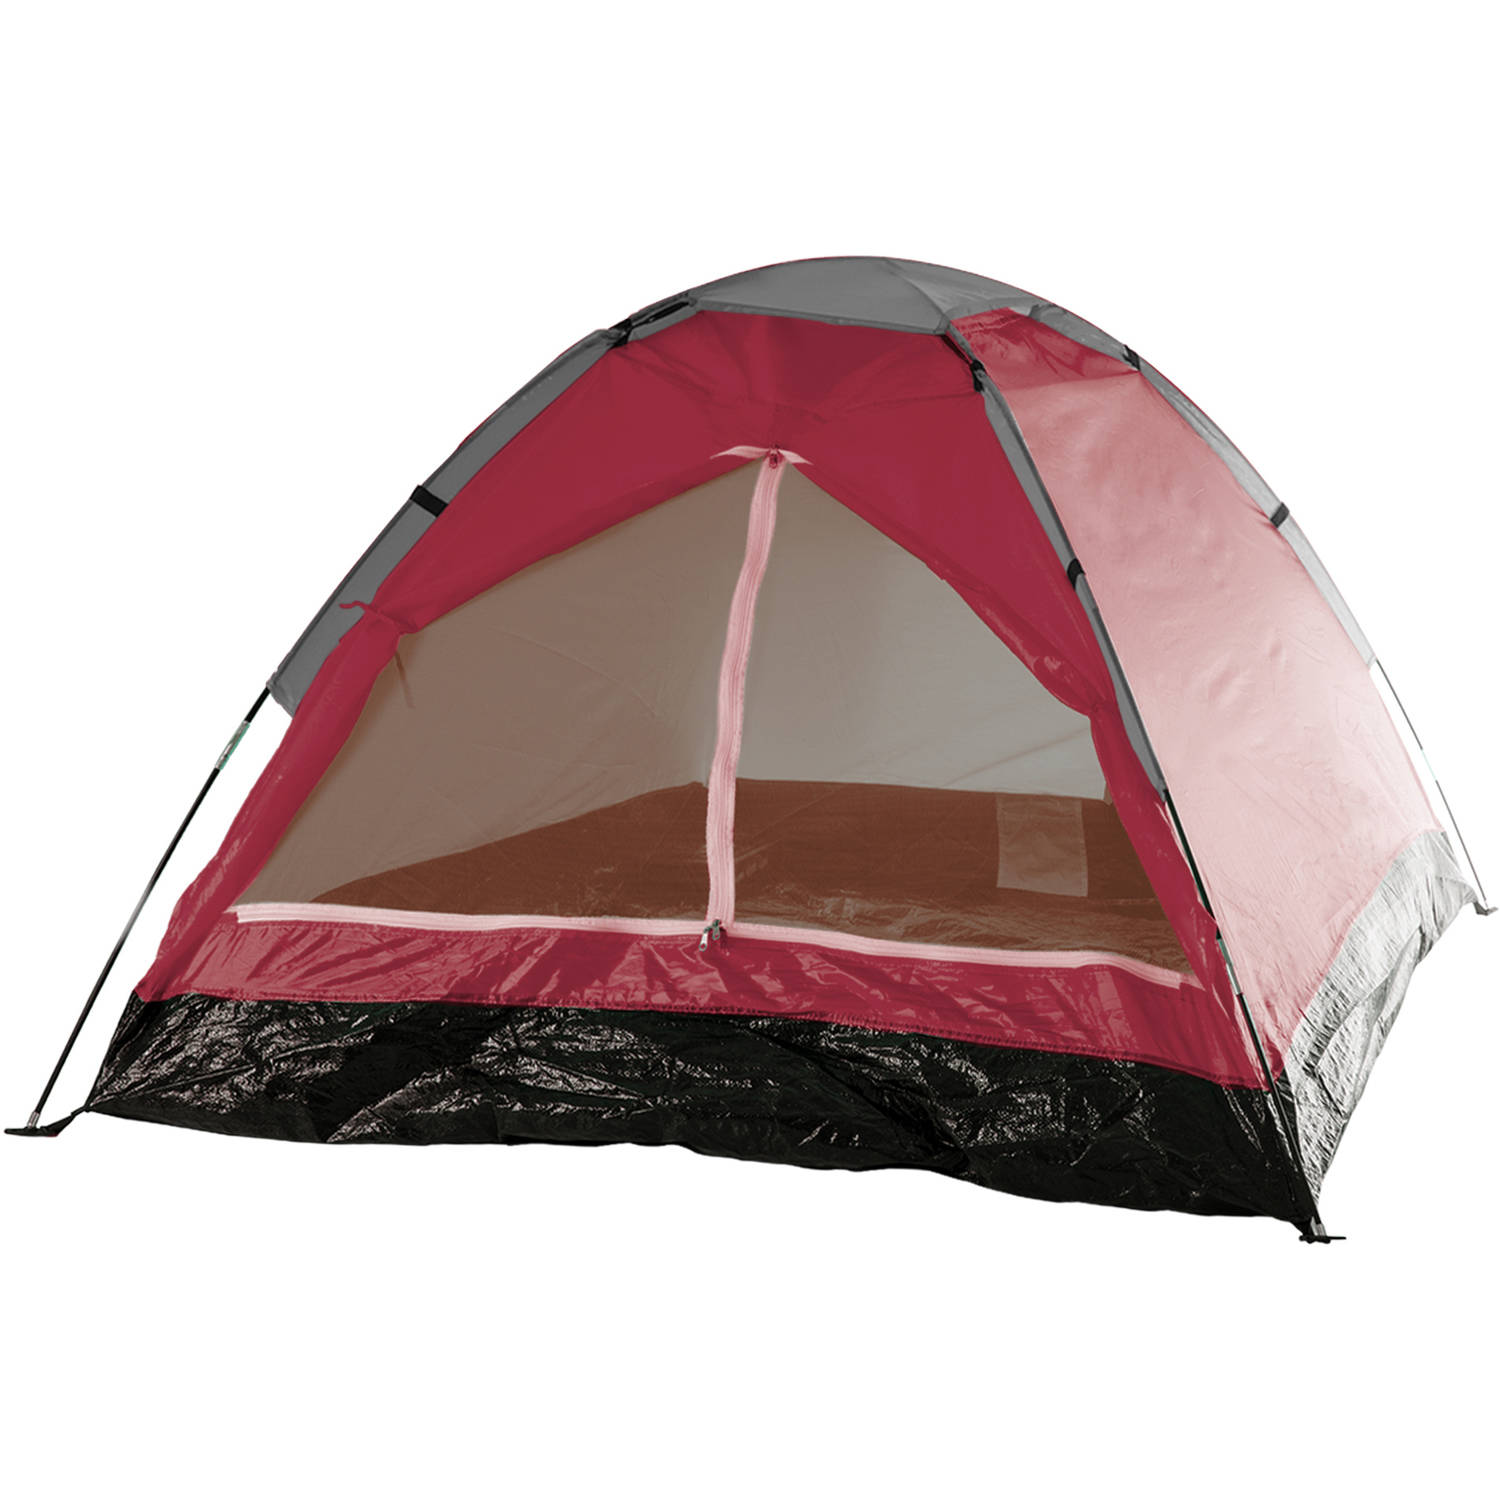 Tent for winter fishing machine: recommendations for selection and operation